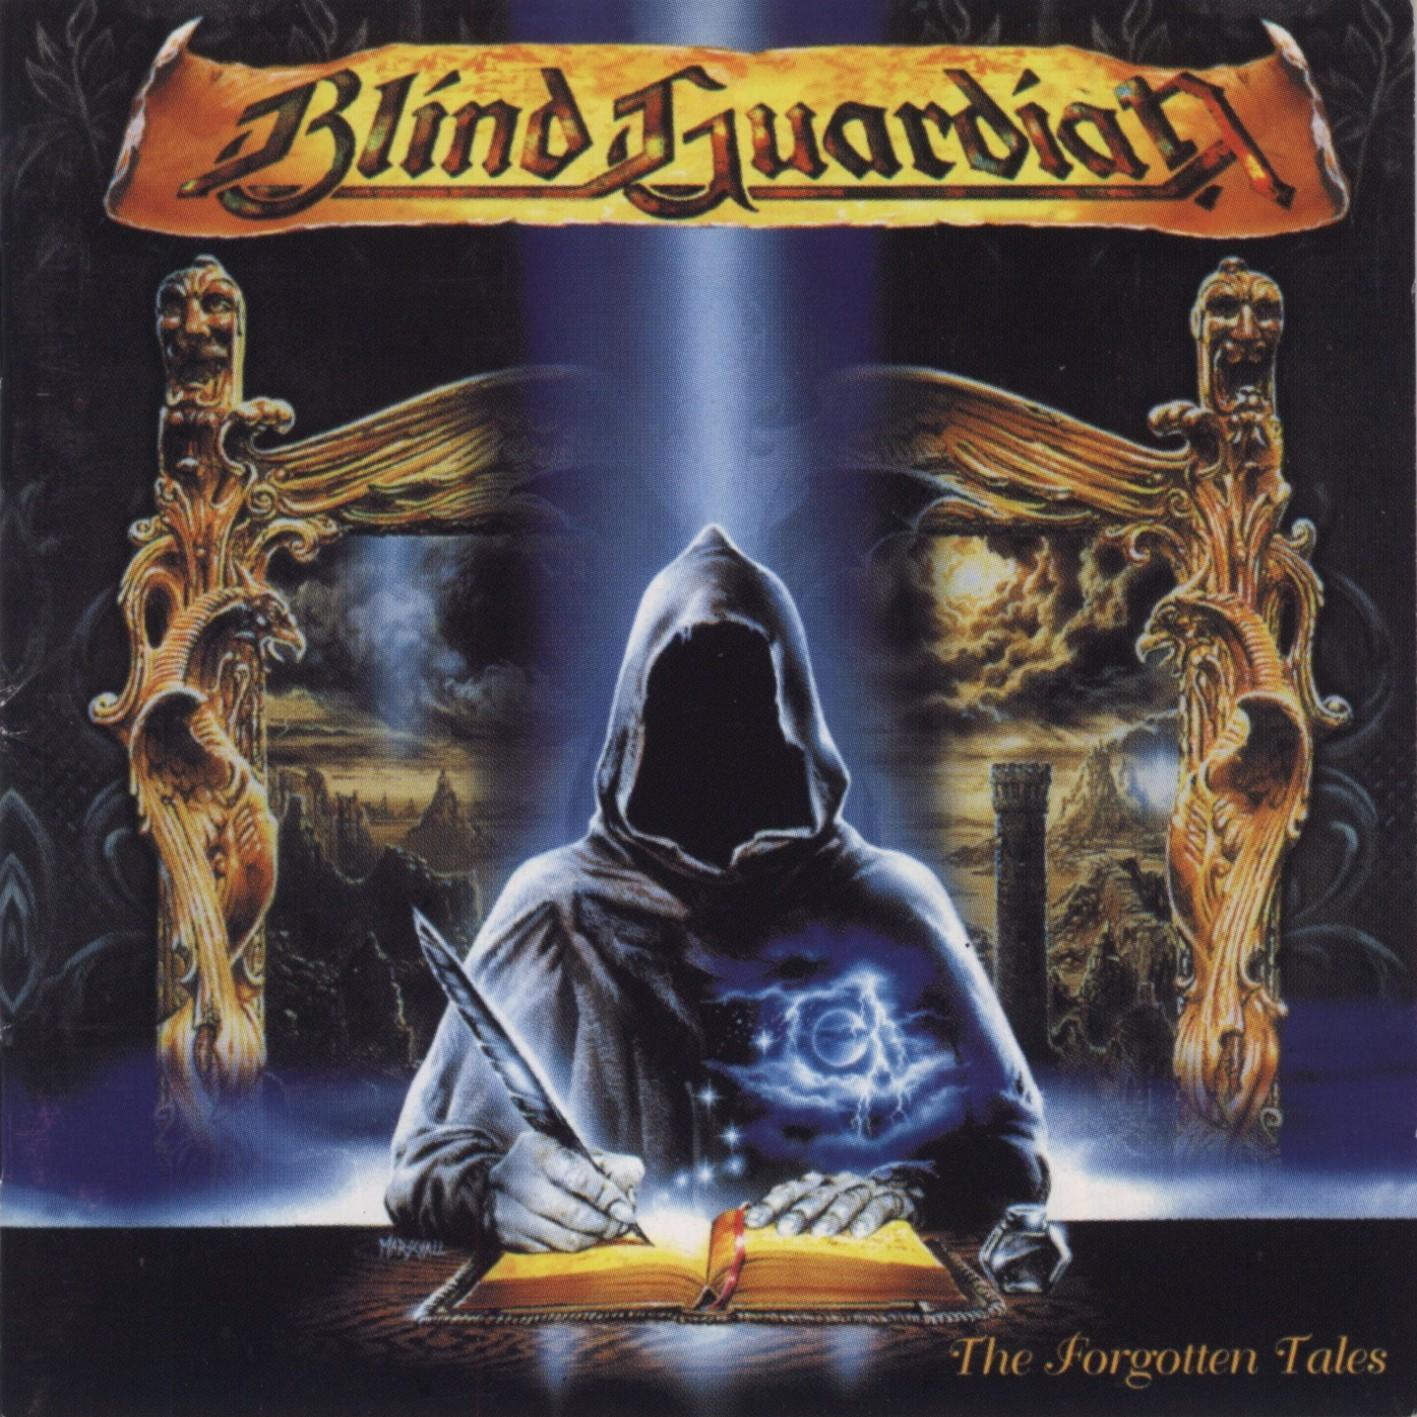 Terror titans eine kleine schreckmusik for Mirror mirror blind guardian lyrics